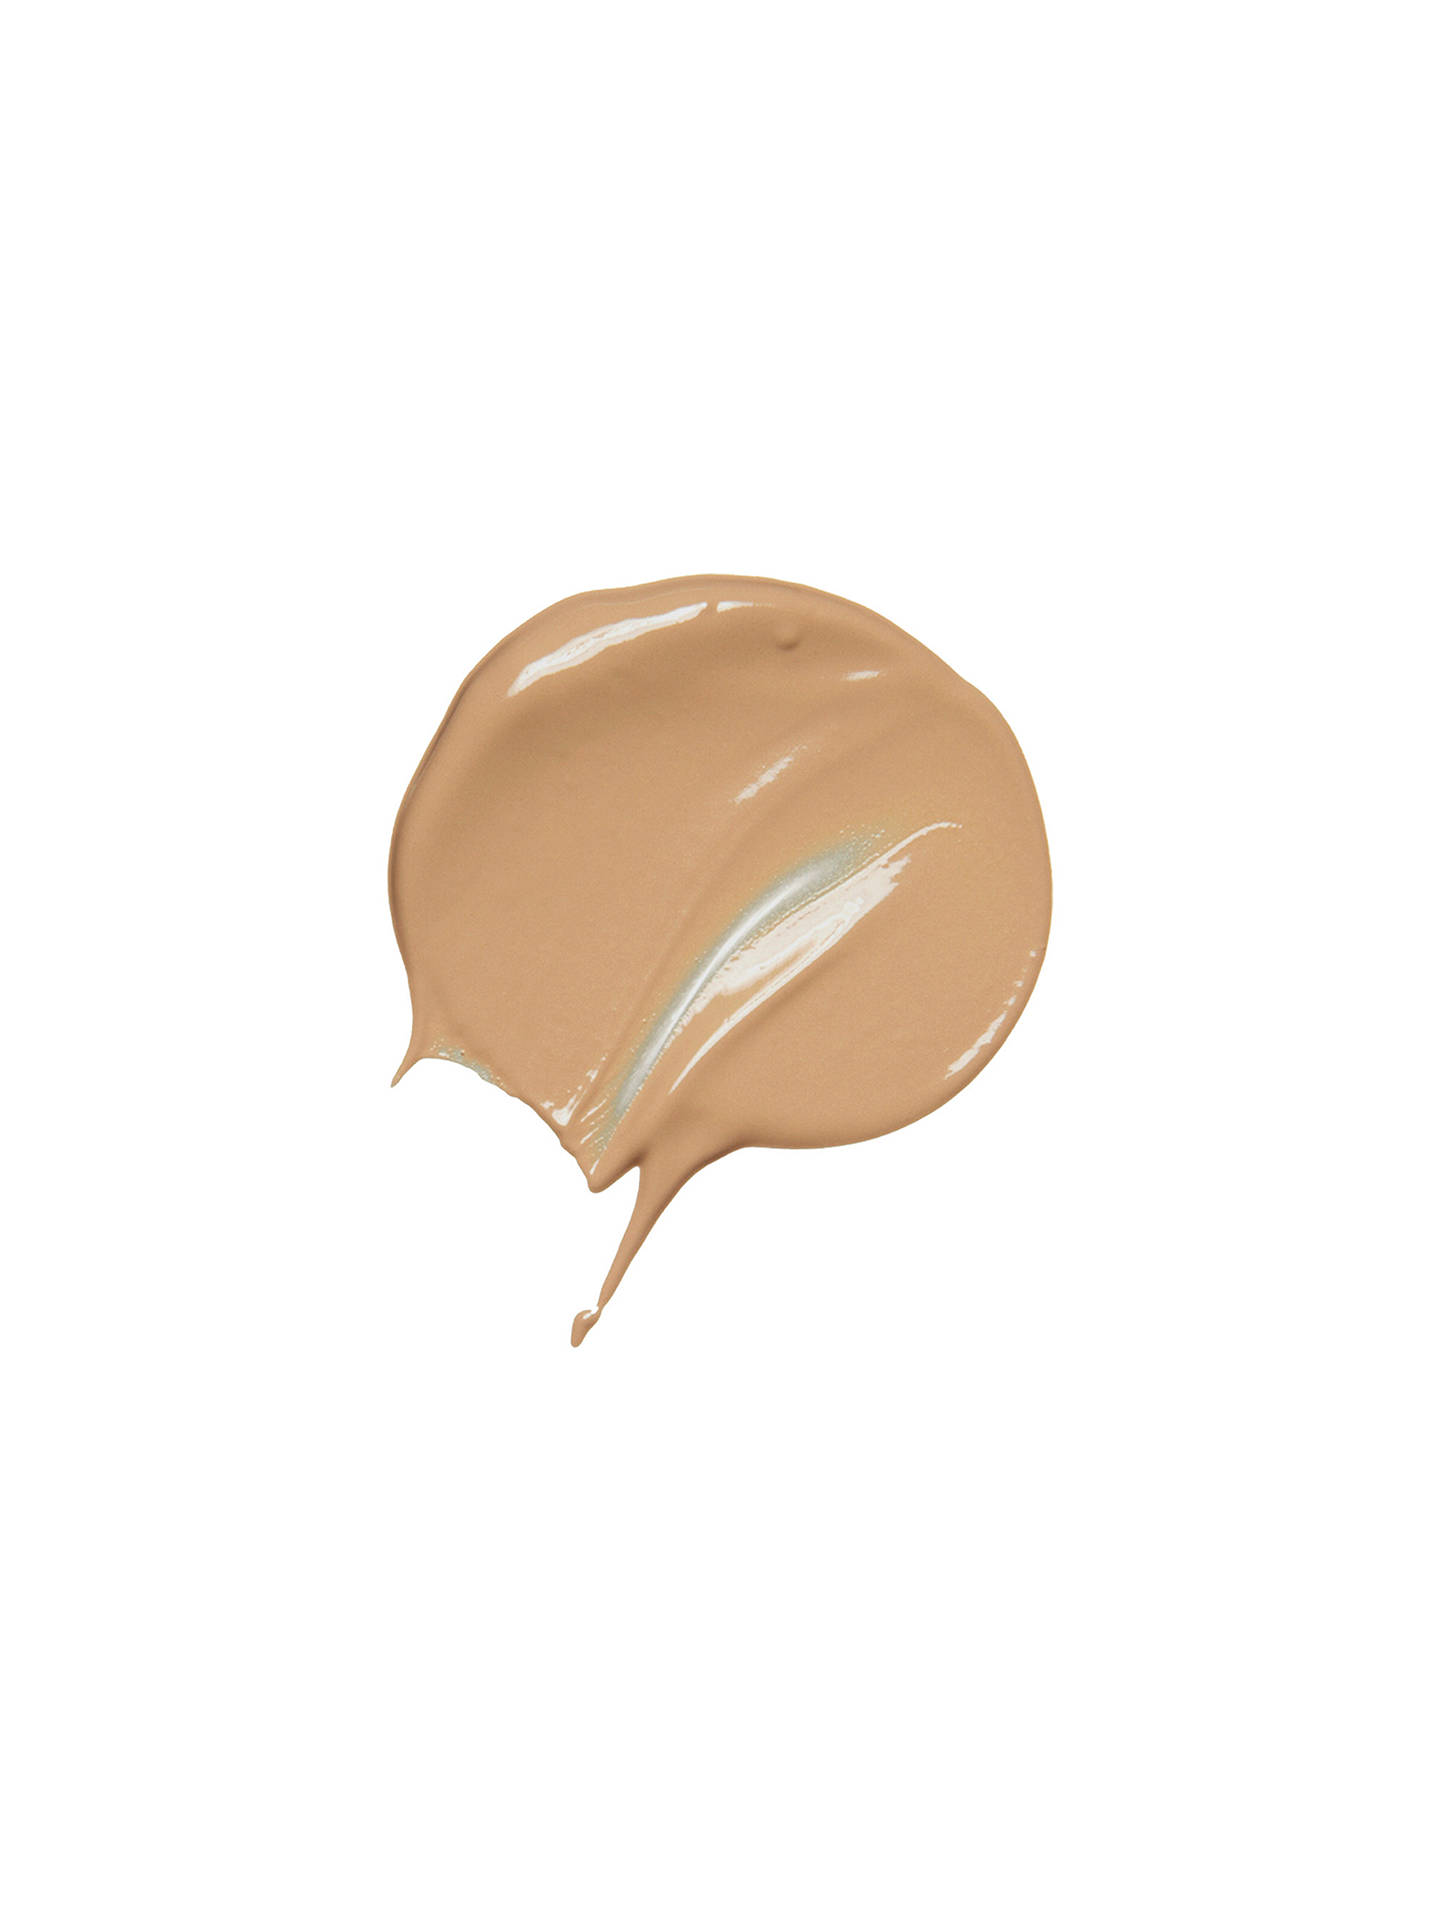 Buy Clarins Skin Illusion Natural Radiance Foundation SPF10, 114 Cappucino Online at johnlewis.com